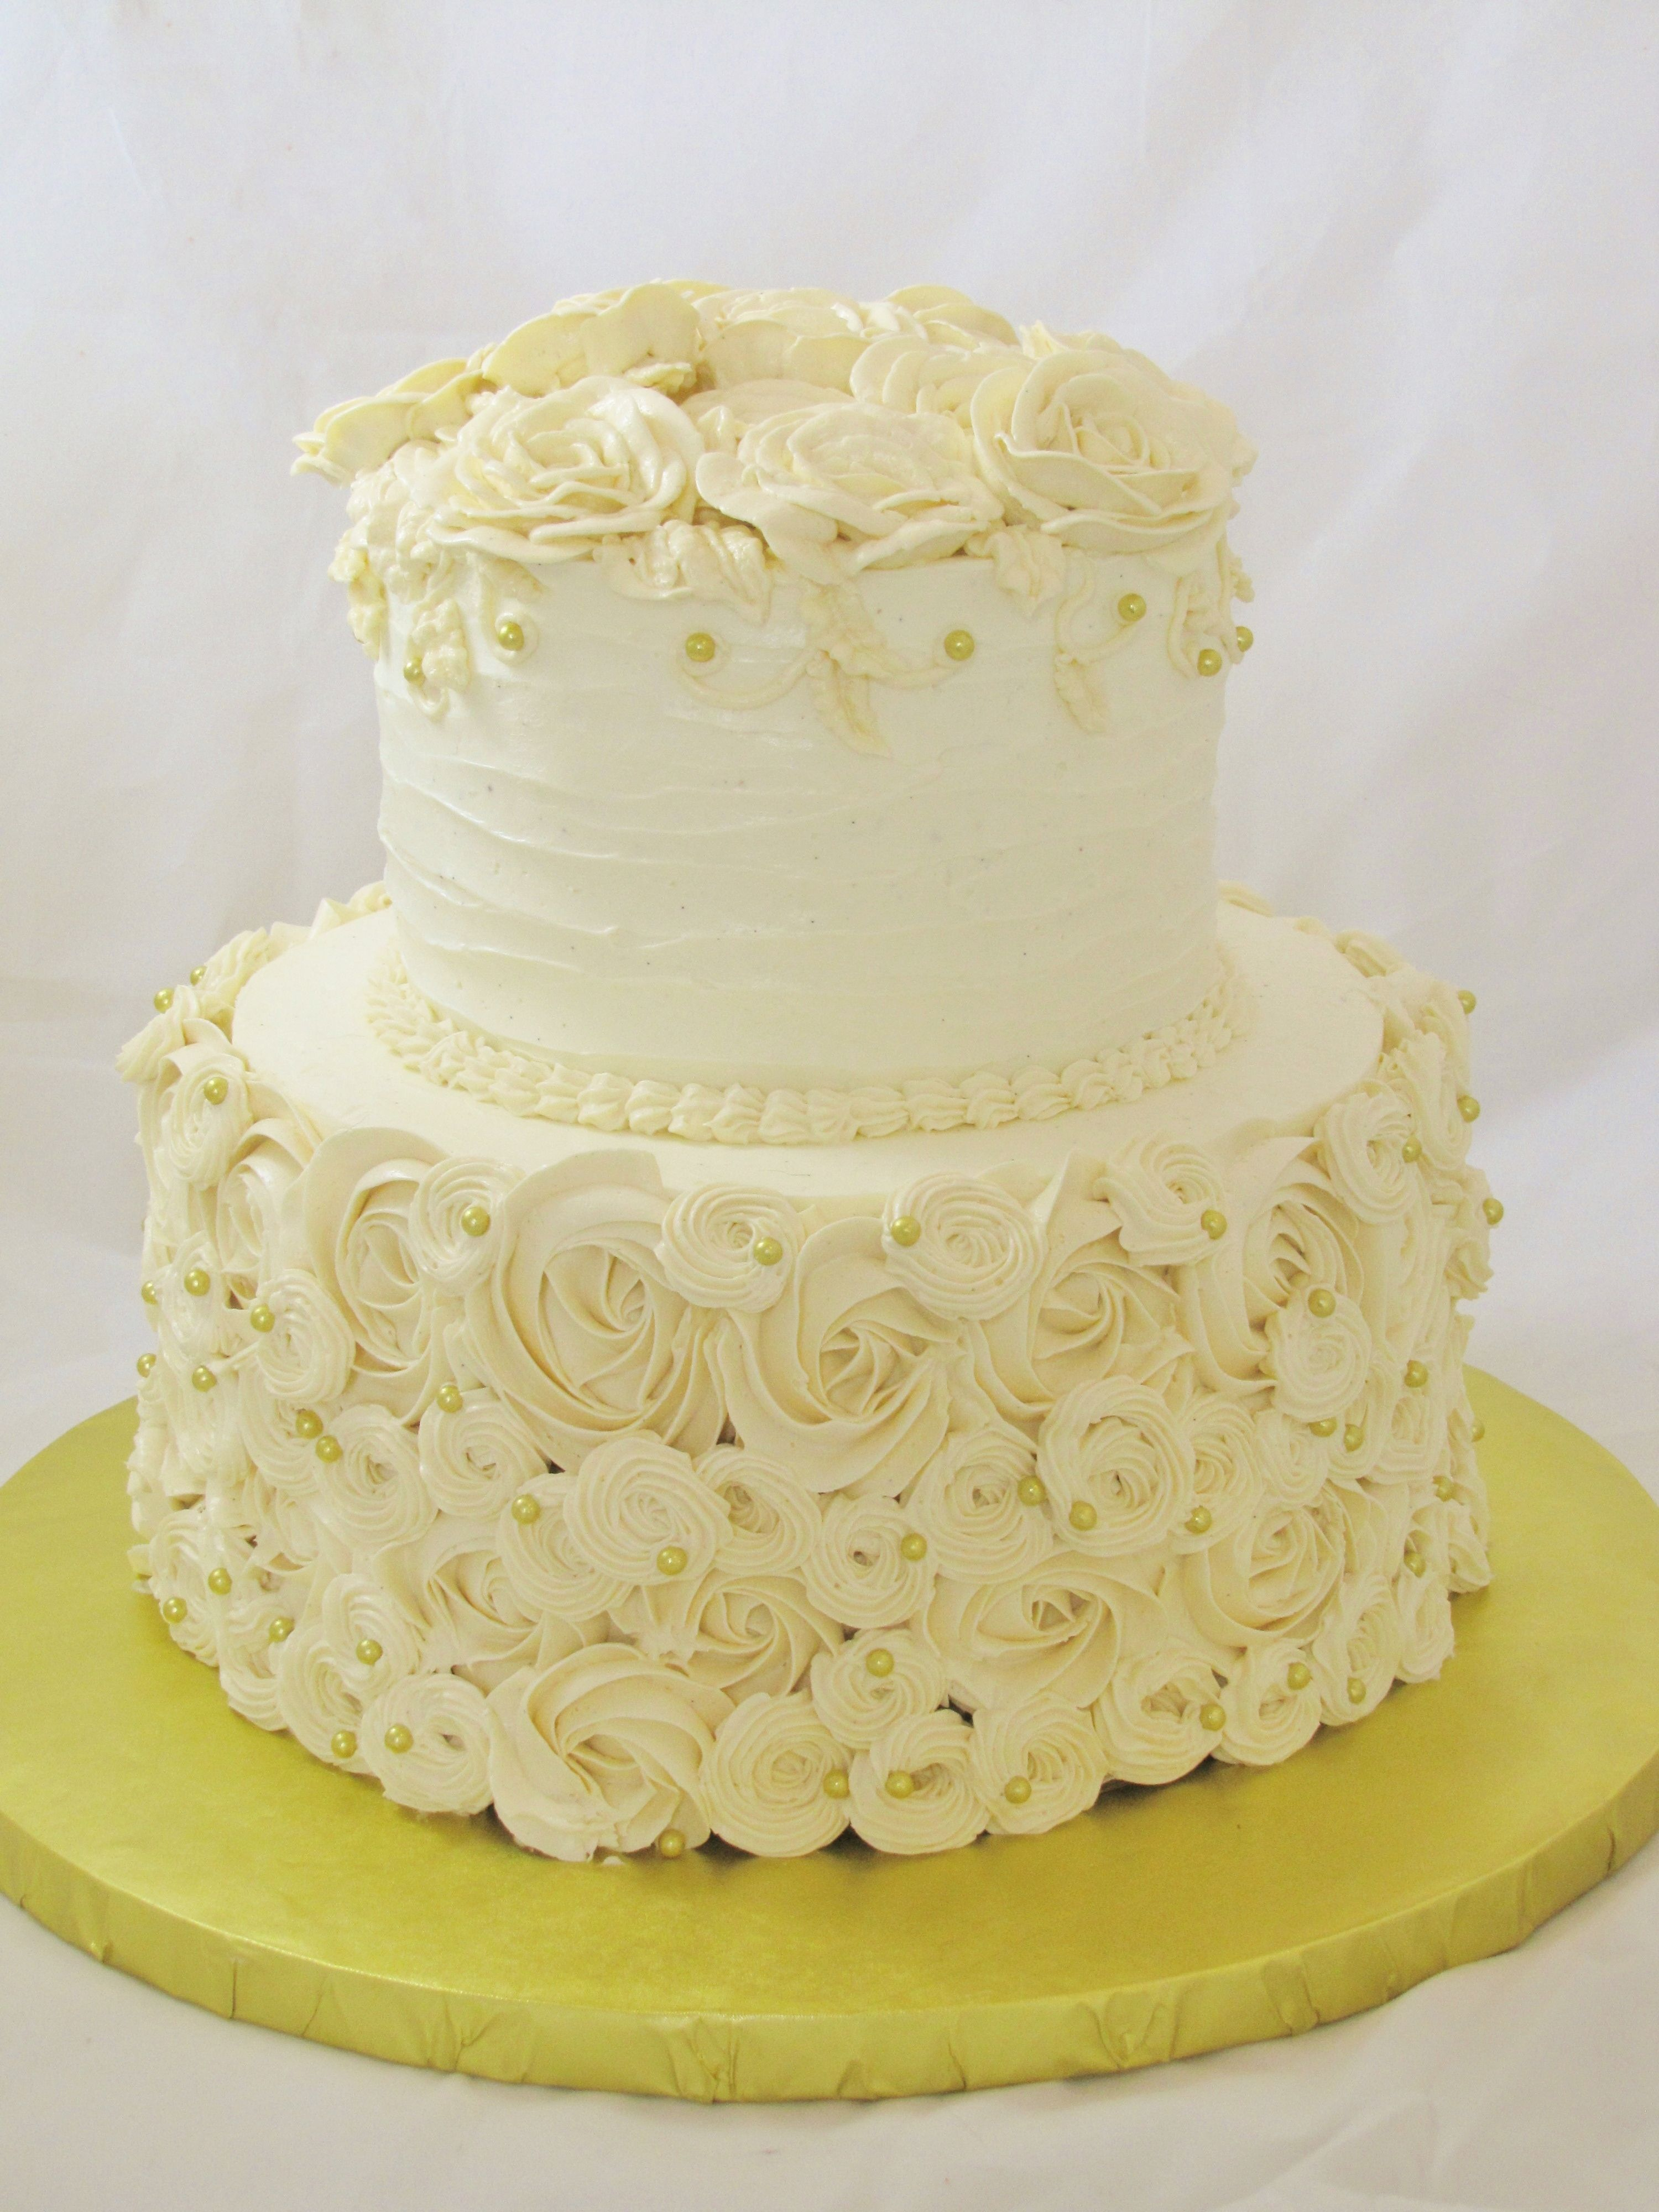 Round piped buttercream wedding cake - full view of round, piped ...